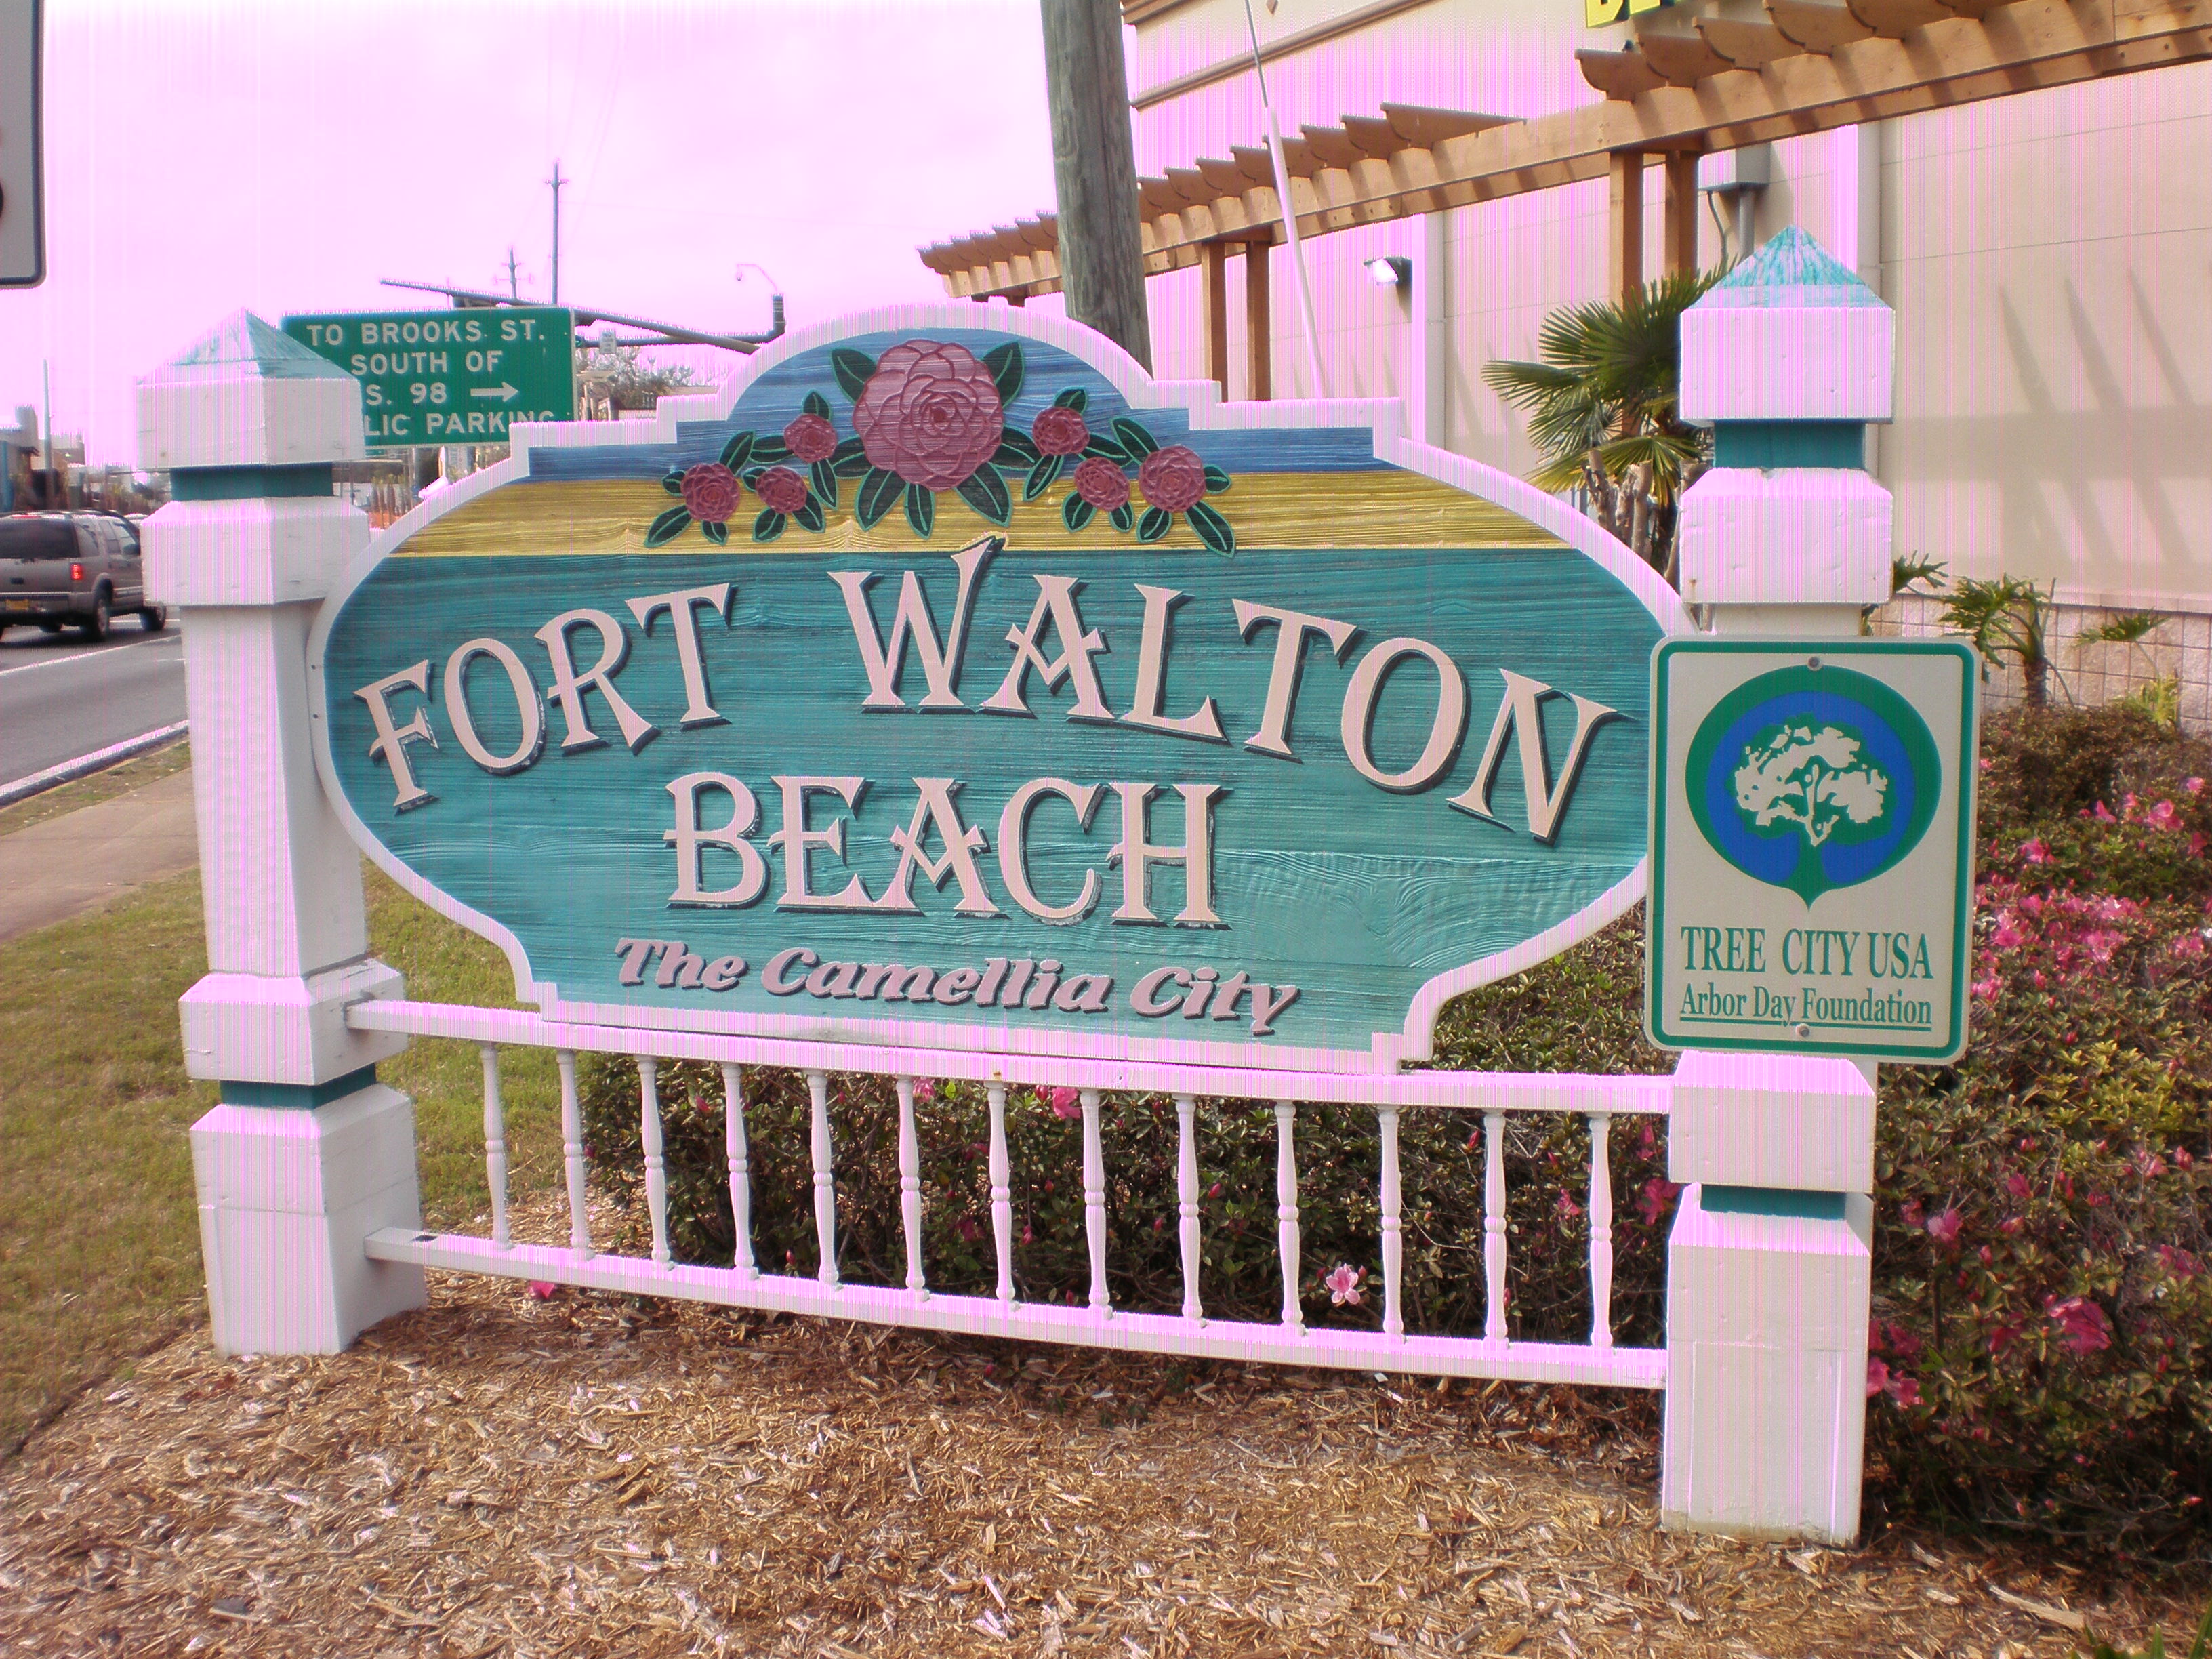 Best Florida Family Beach Vacations; Ft. Walton Beach